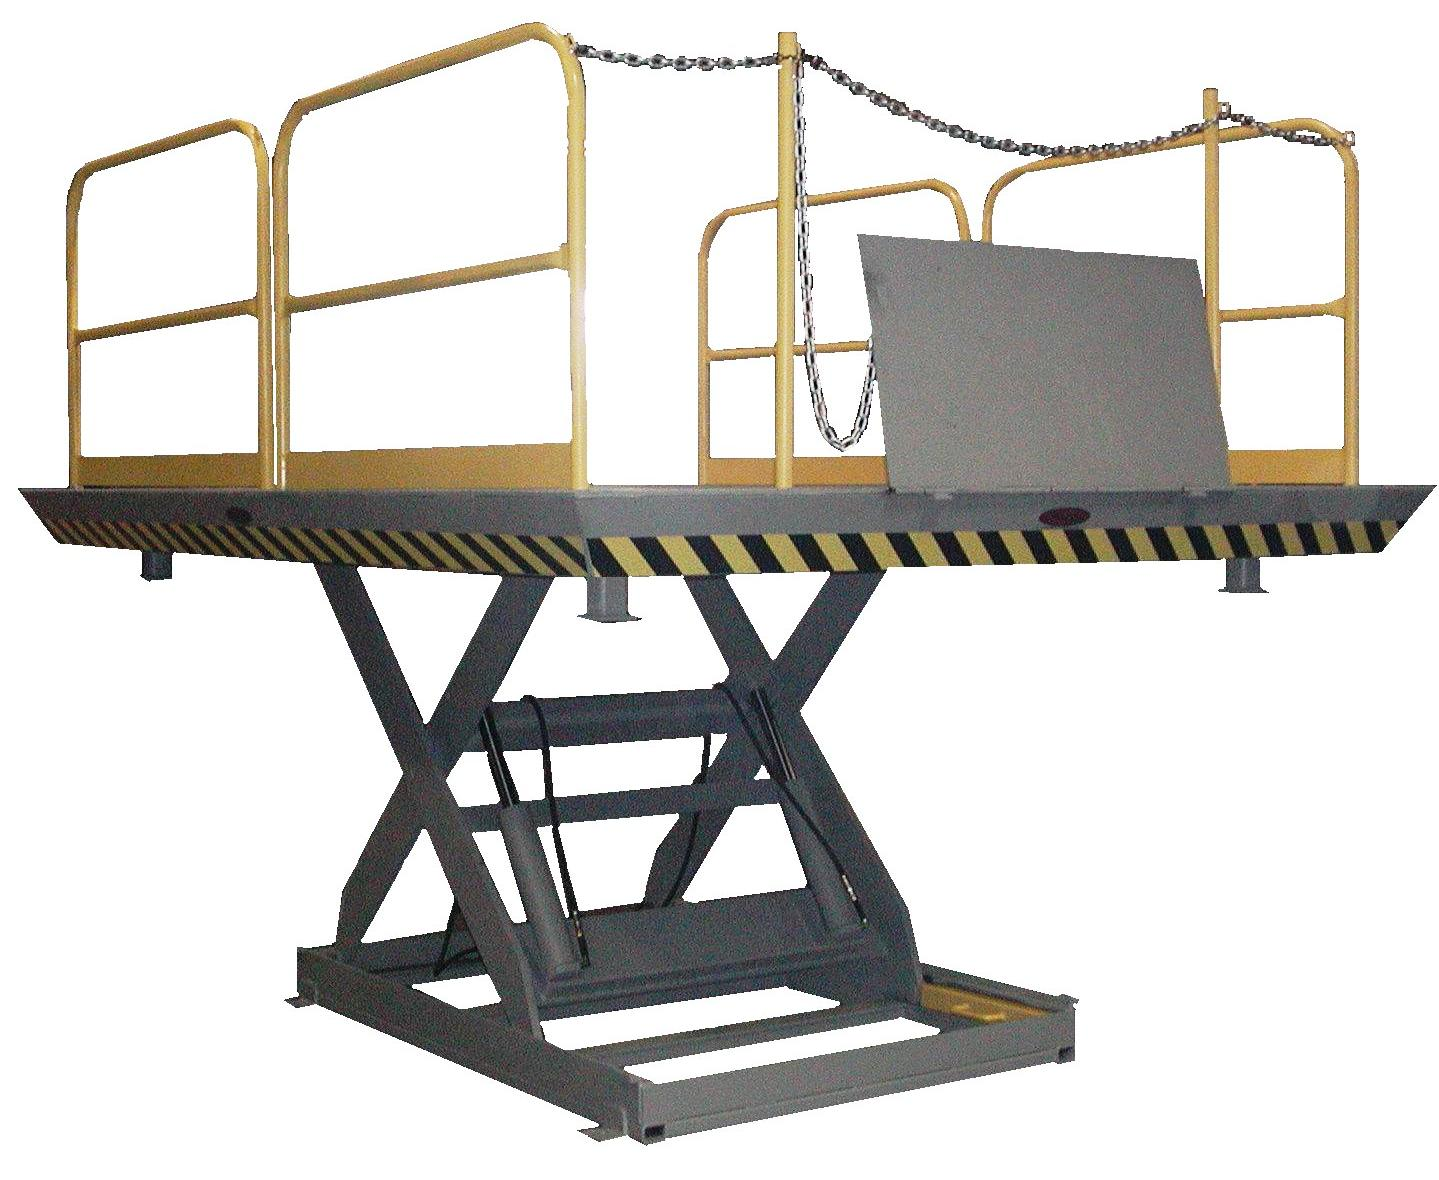 Copperloy's Hydraulic Ramp